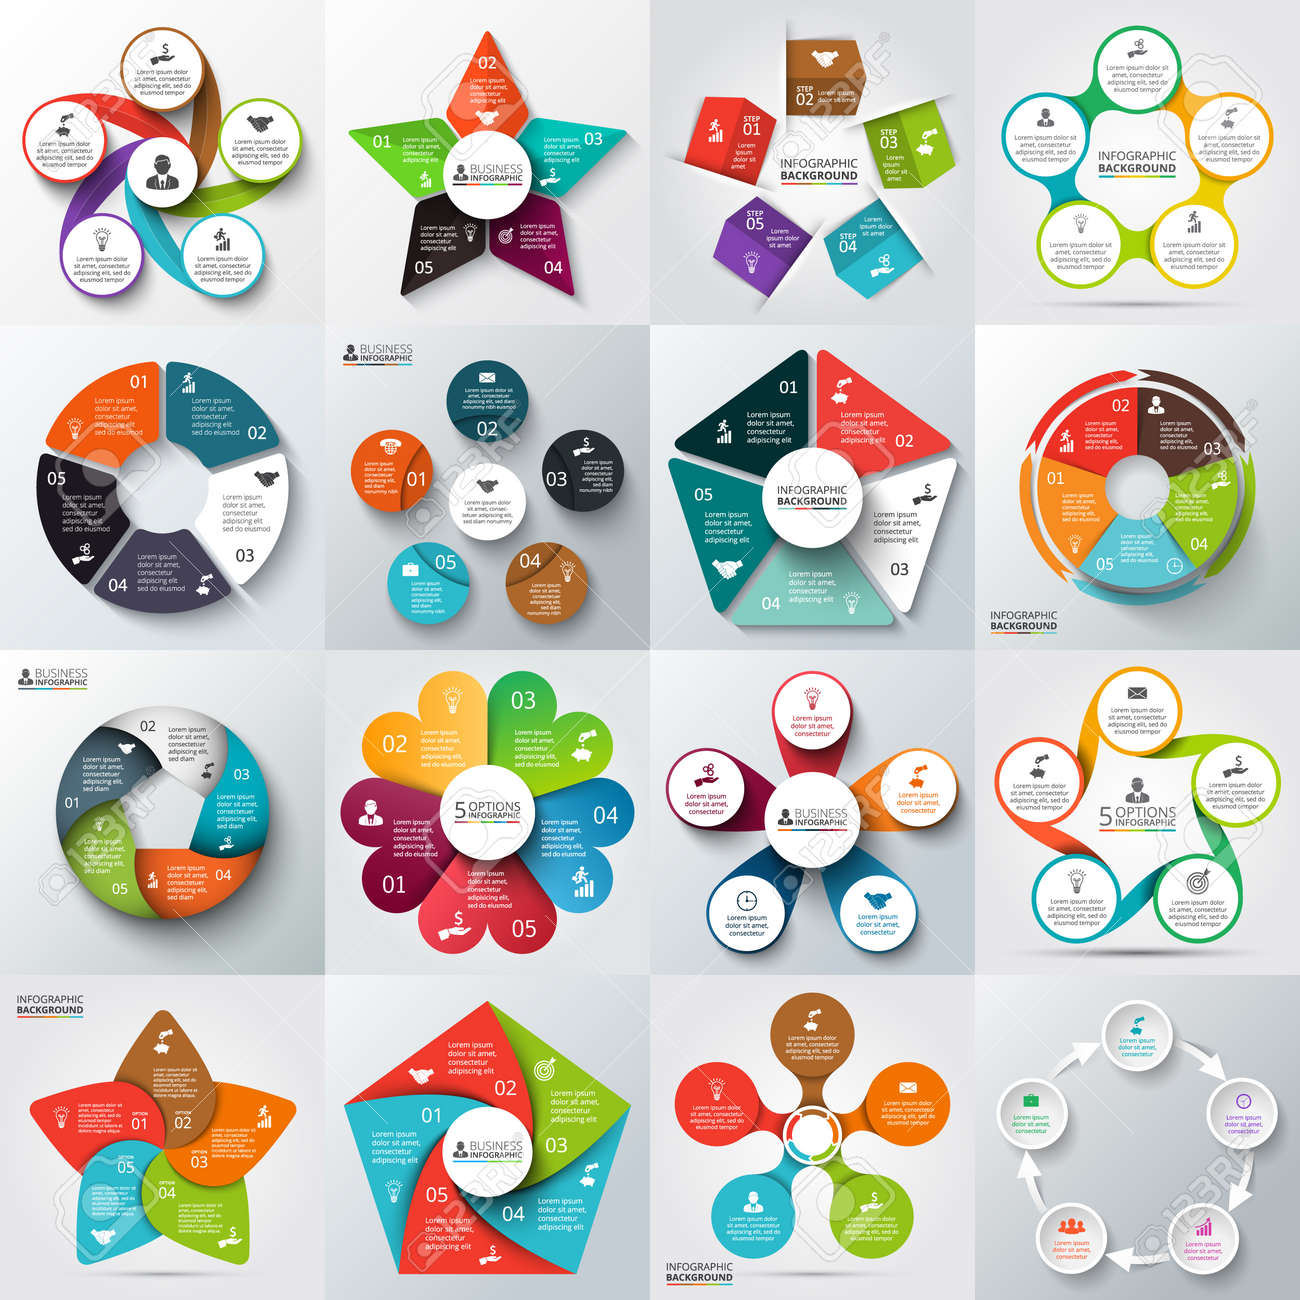 Process cycling arrow by arrow royalty free stock images image - Big Set Of Vector Arrows Pentagons Circles And Other Elements For Infographic Template